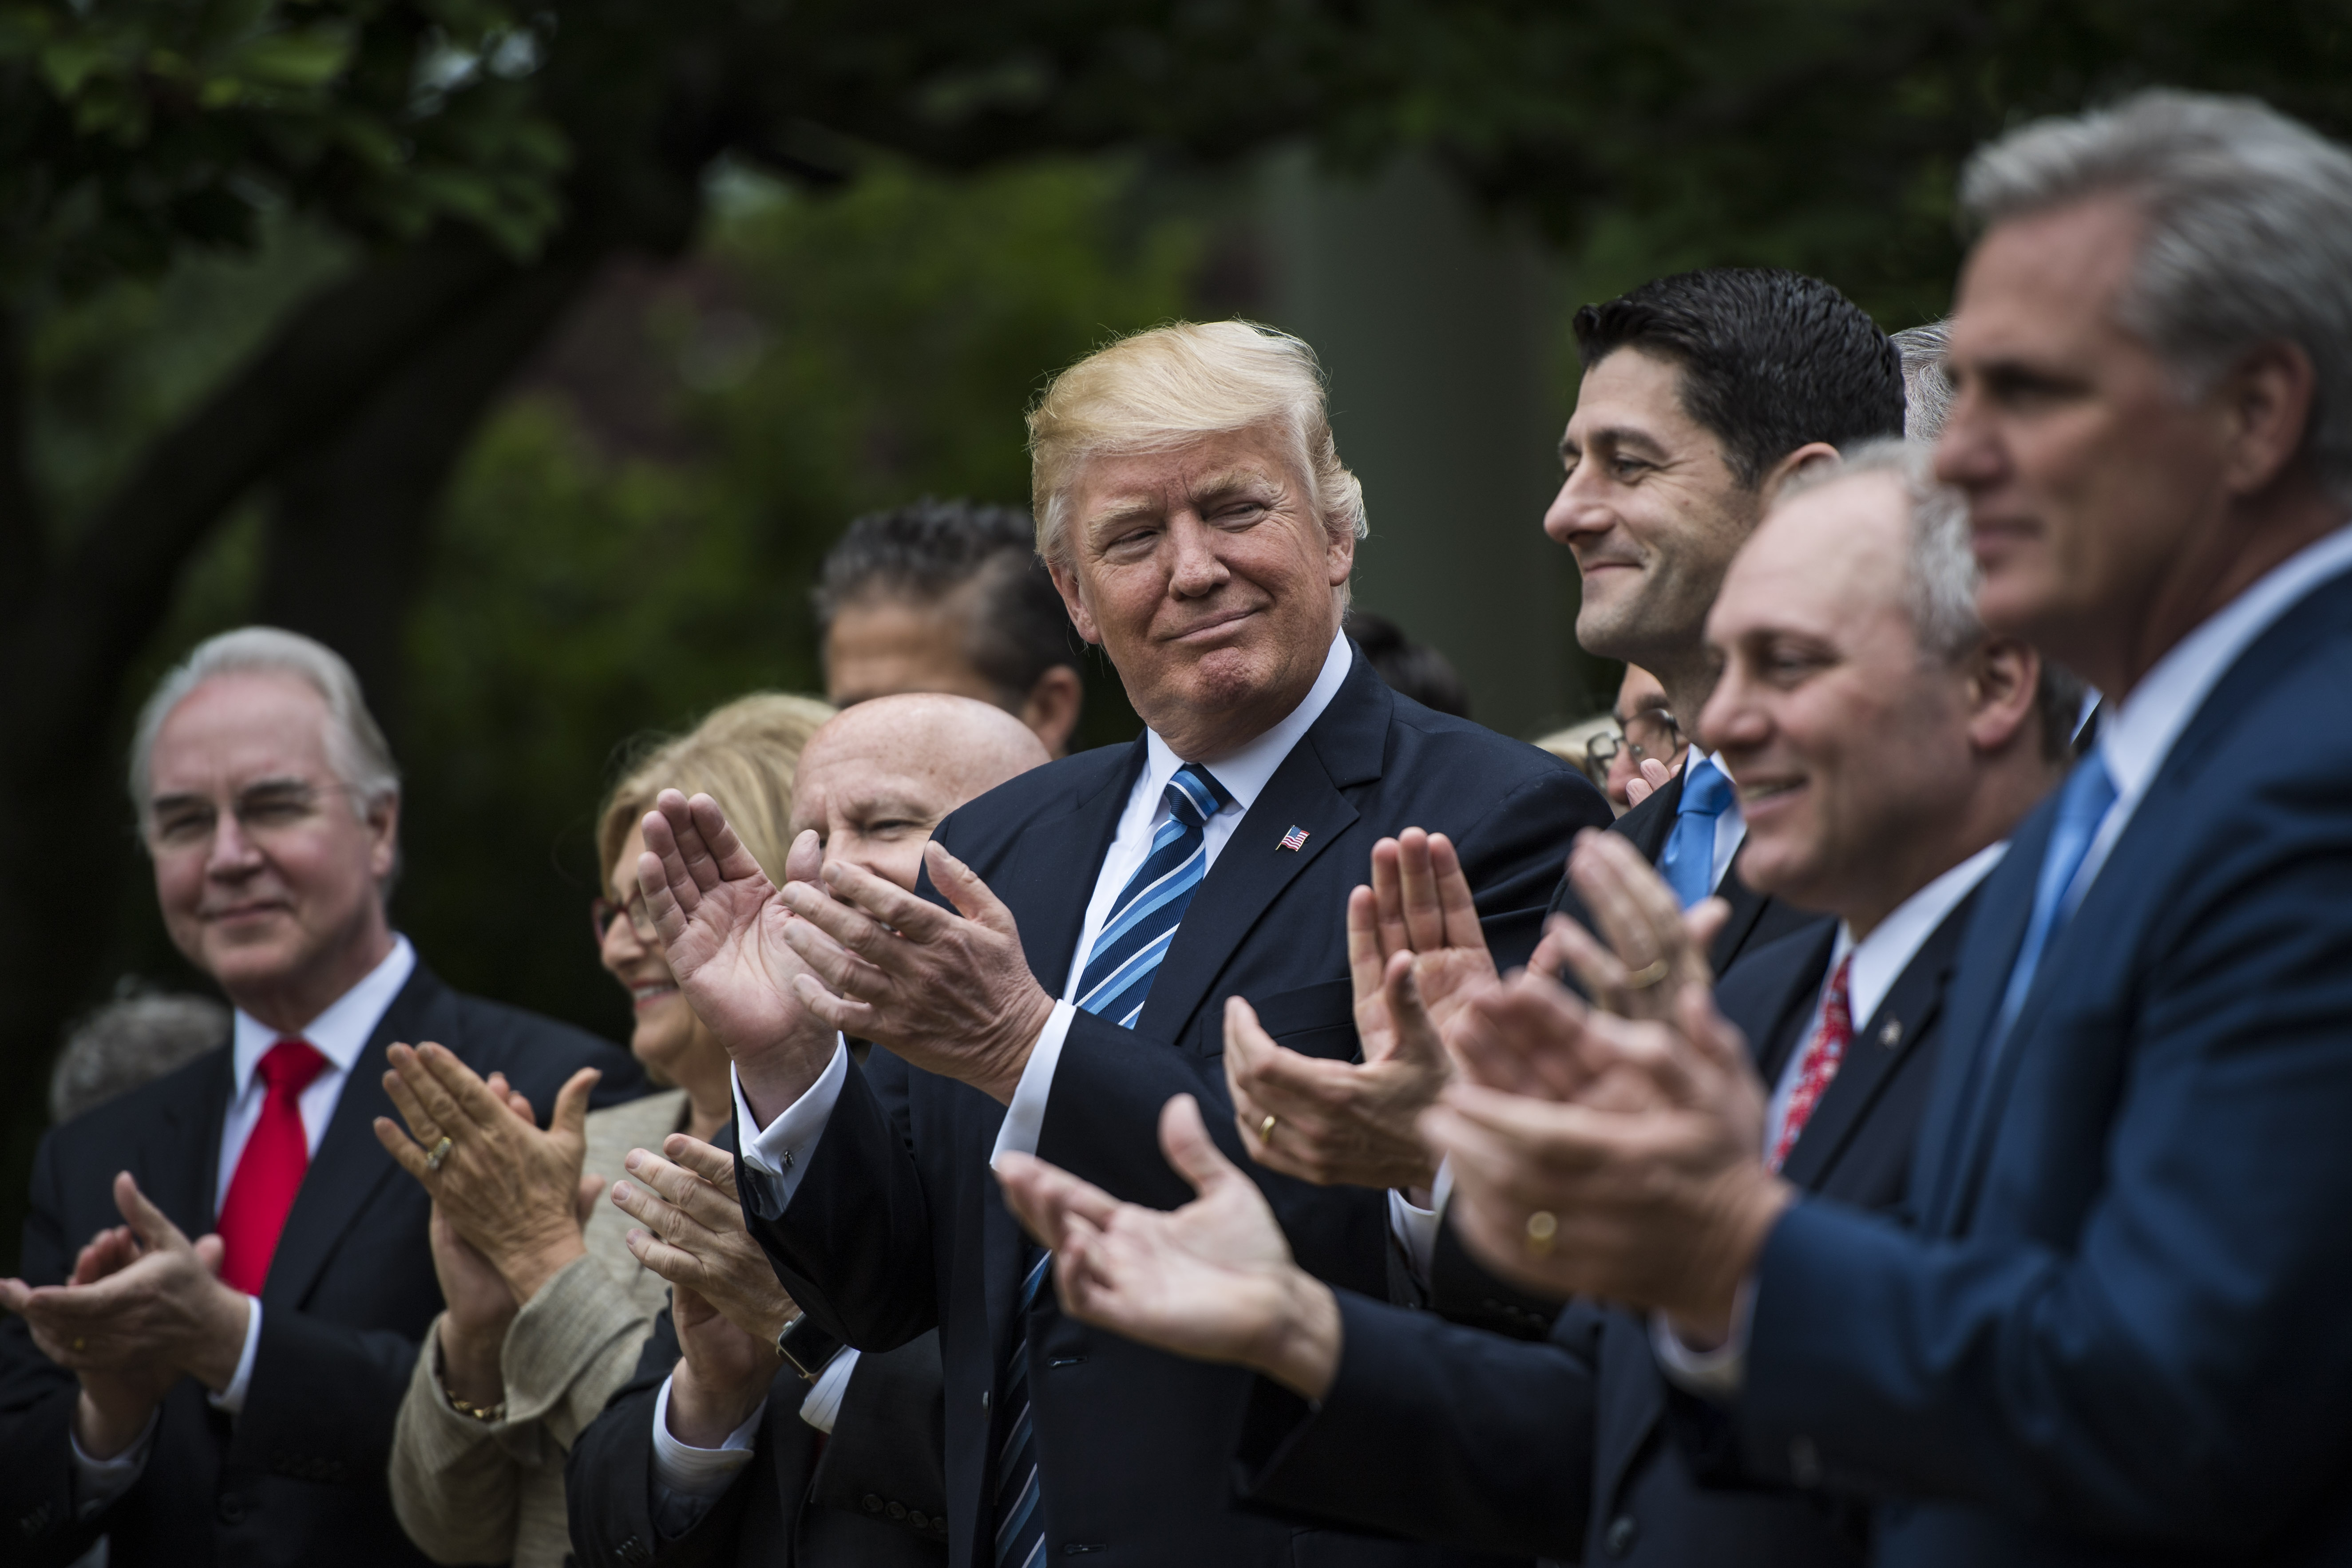 President Donald Trump looks to House Speaker Paul Ryan of Wis., and other House congressmen in the Rose Garden after the House pushed through a health care bill, at the White House in Washington, DC on Thursday, May 04, 2017.